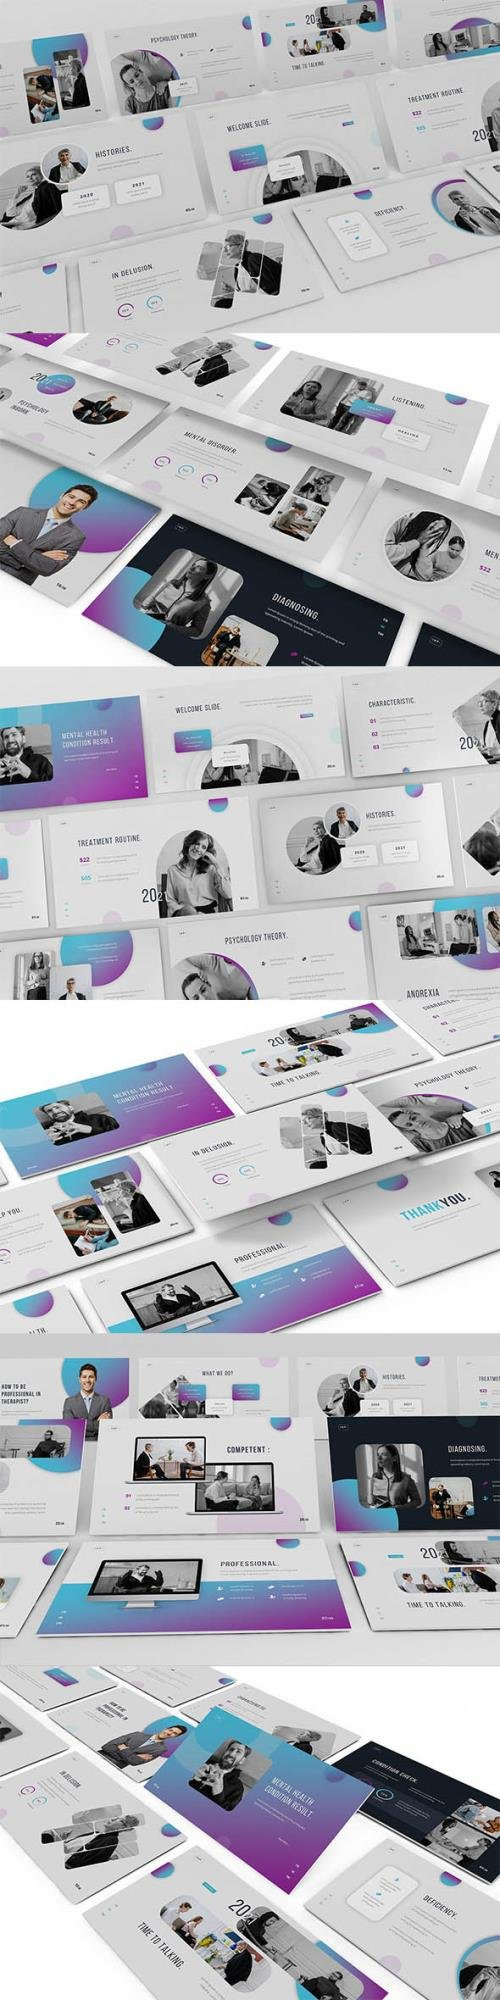 Inhealth Psychology Powerpoint, Keynote and Google Slides Template